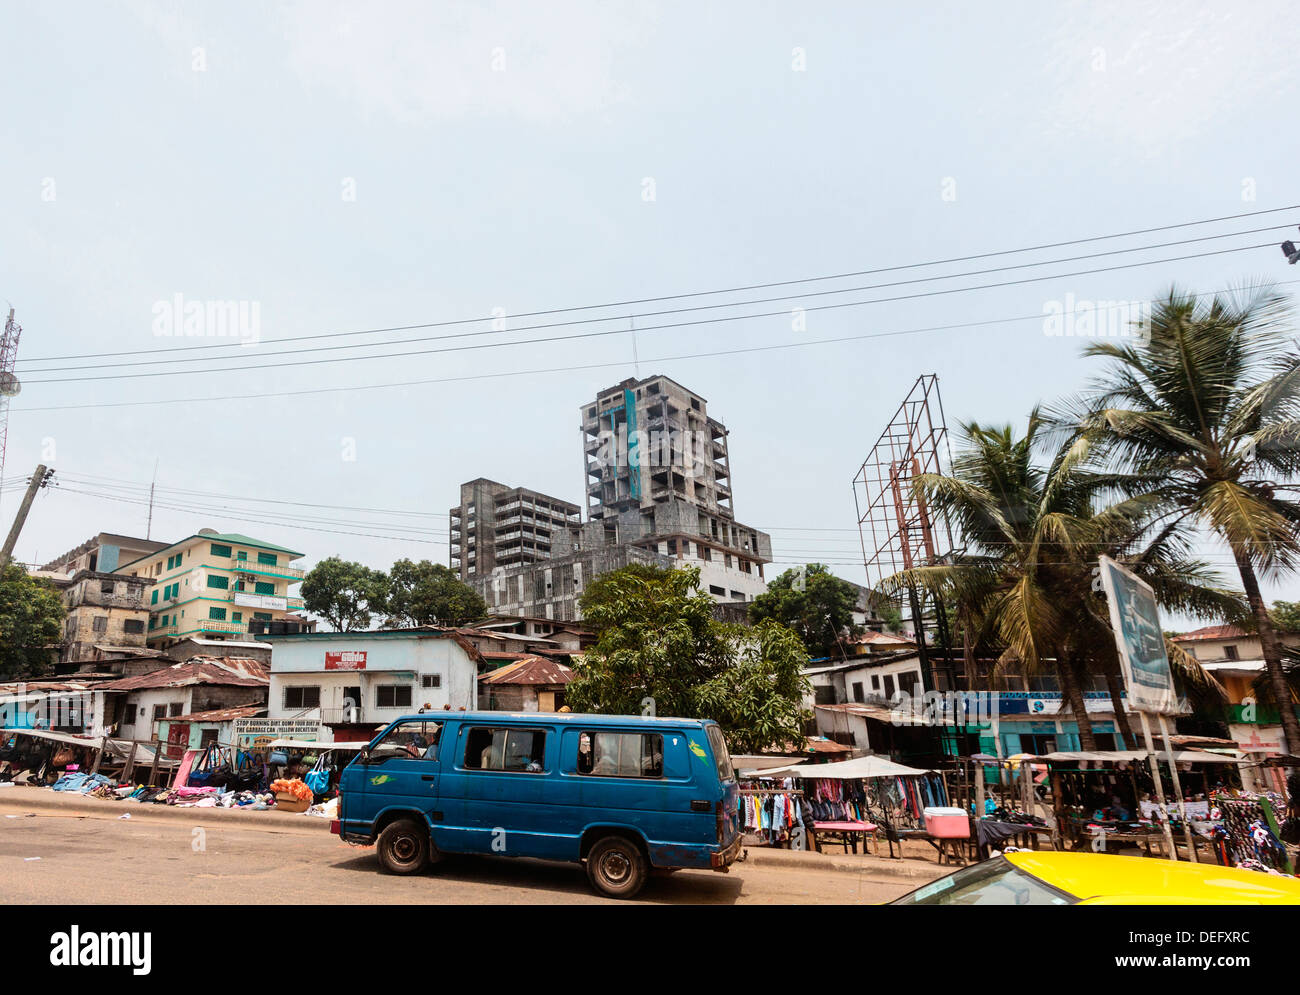 Africa, Liberia, Monrovia. Van passing by busy city market. Stock Photo